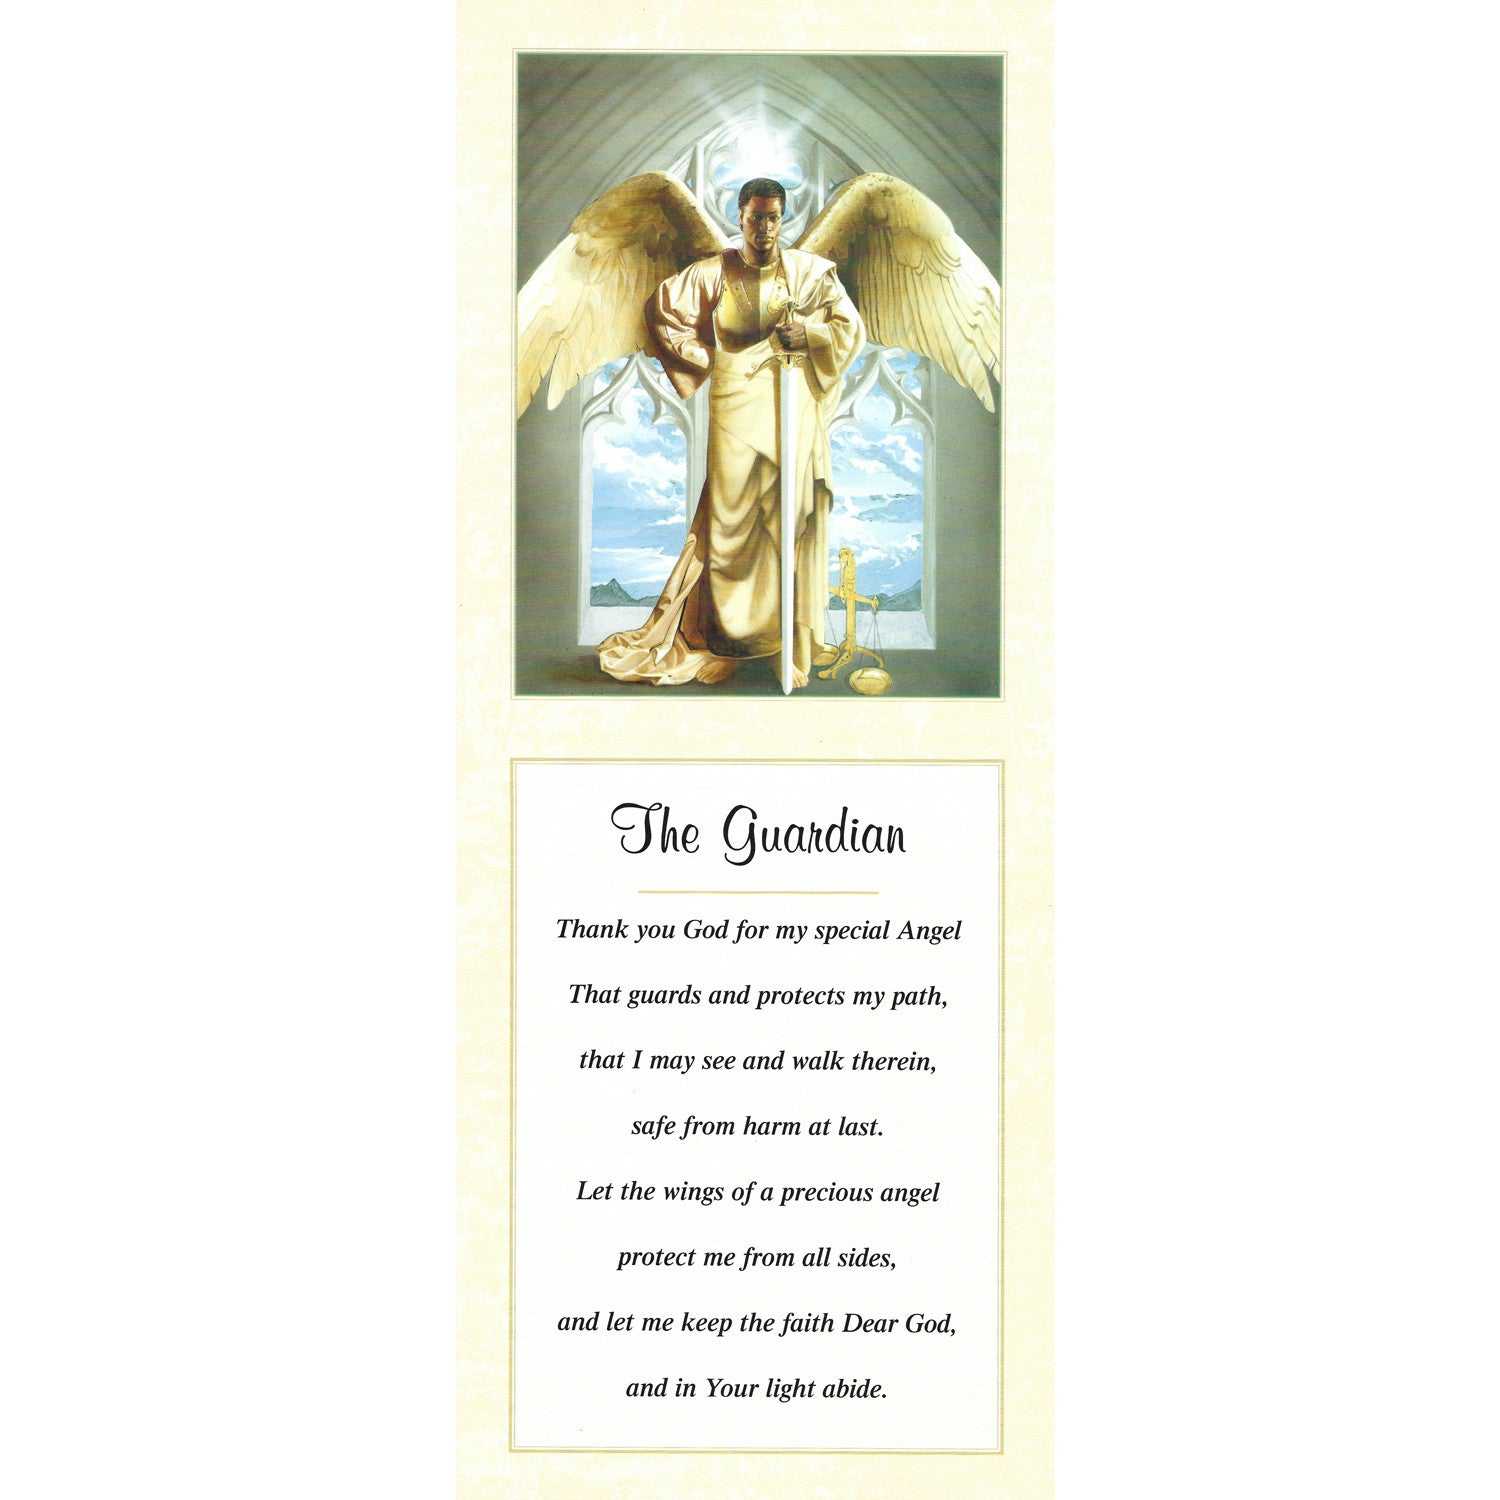 The Guardian by Shahidah and Edward Clay Wright (Literary Art Print)